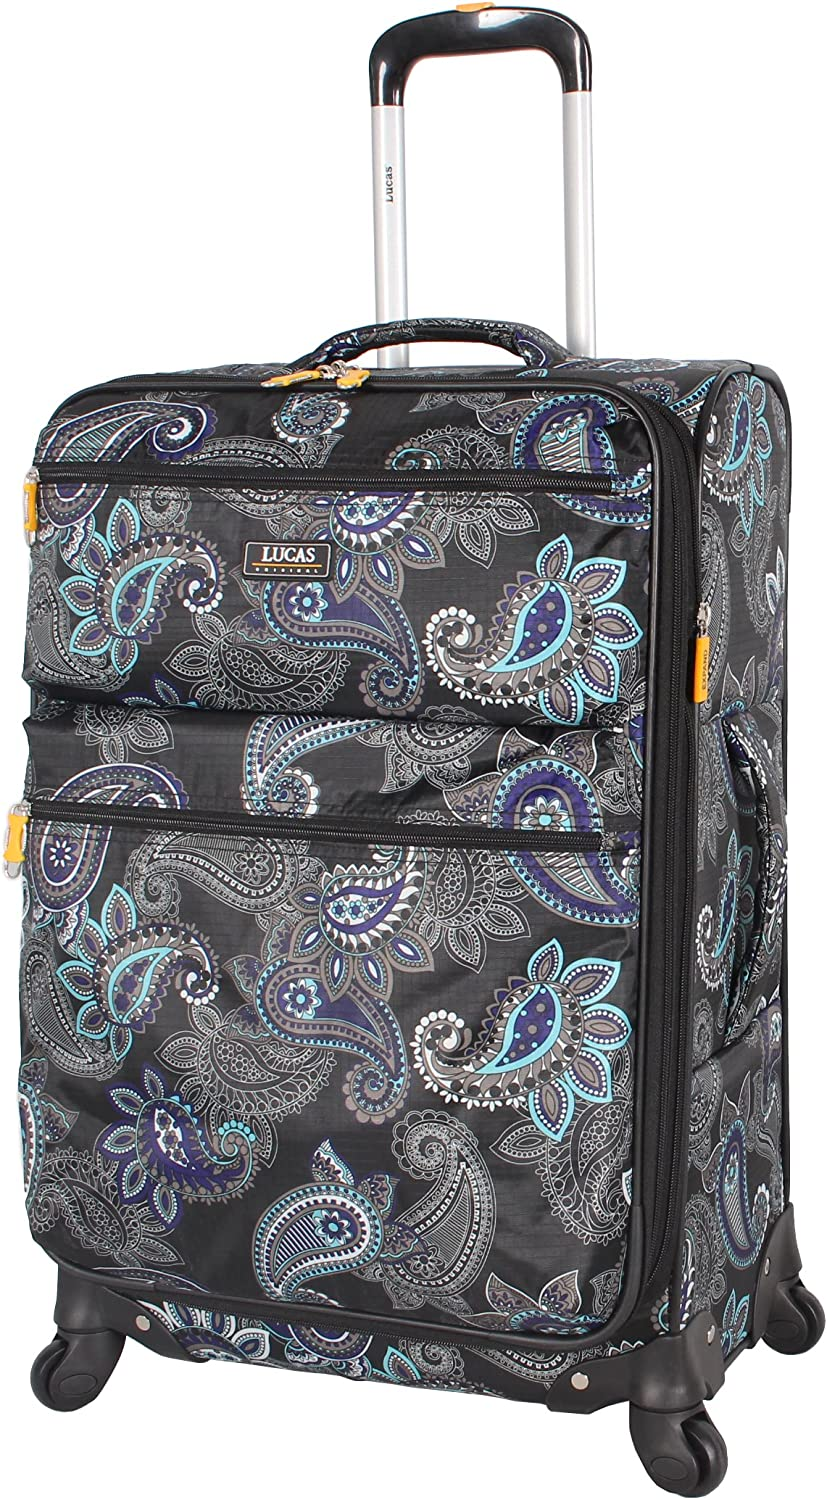 Durable Small Ultra Lightweight Bag with 4-Rolling Spinner Wheels Expandable 20 Inch Suitcase Diva Lucas Designer Luggage Carry On Collection